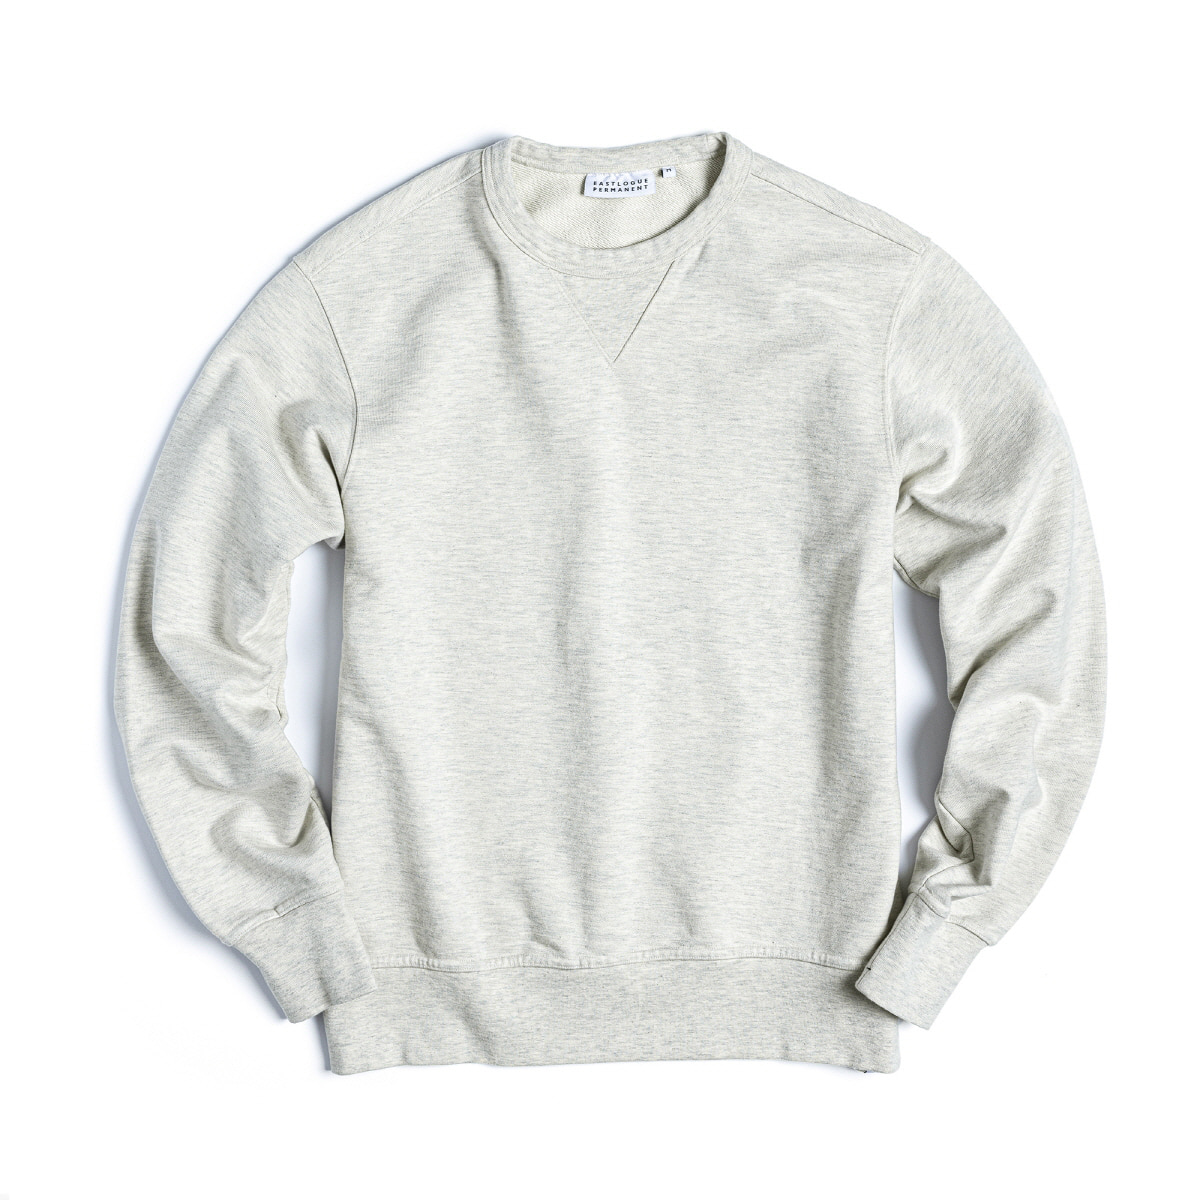 SWEAT SHIRT - OATMEAL